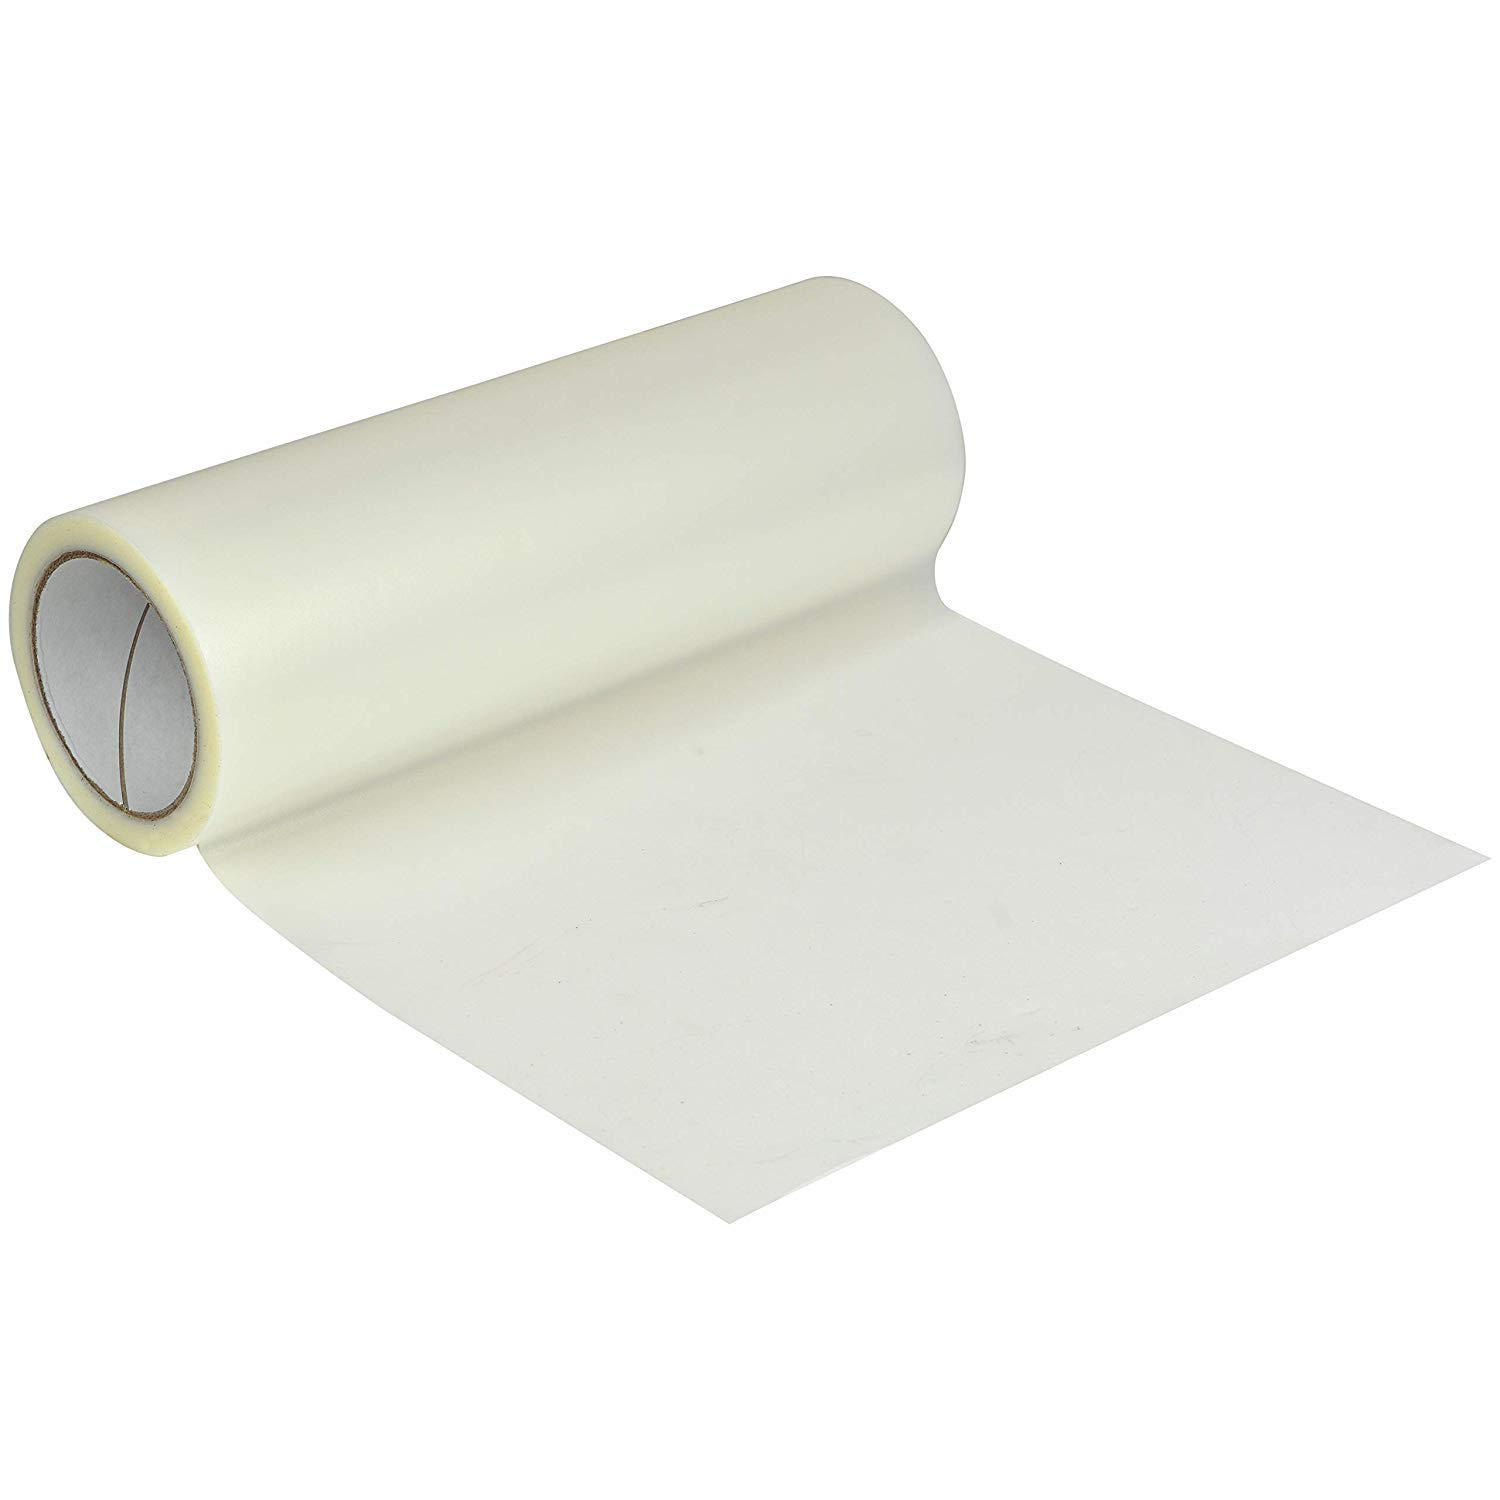 Angel Crafts Transfer Paper Tape: Craft Transfer Tape for Vinyl  Application, No Grid Self Adhesive Transfer Paper Roll Compatible with  Cricut,